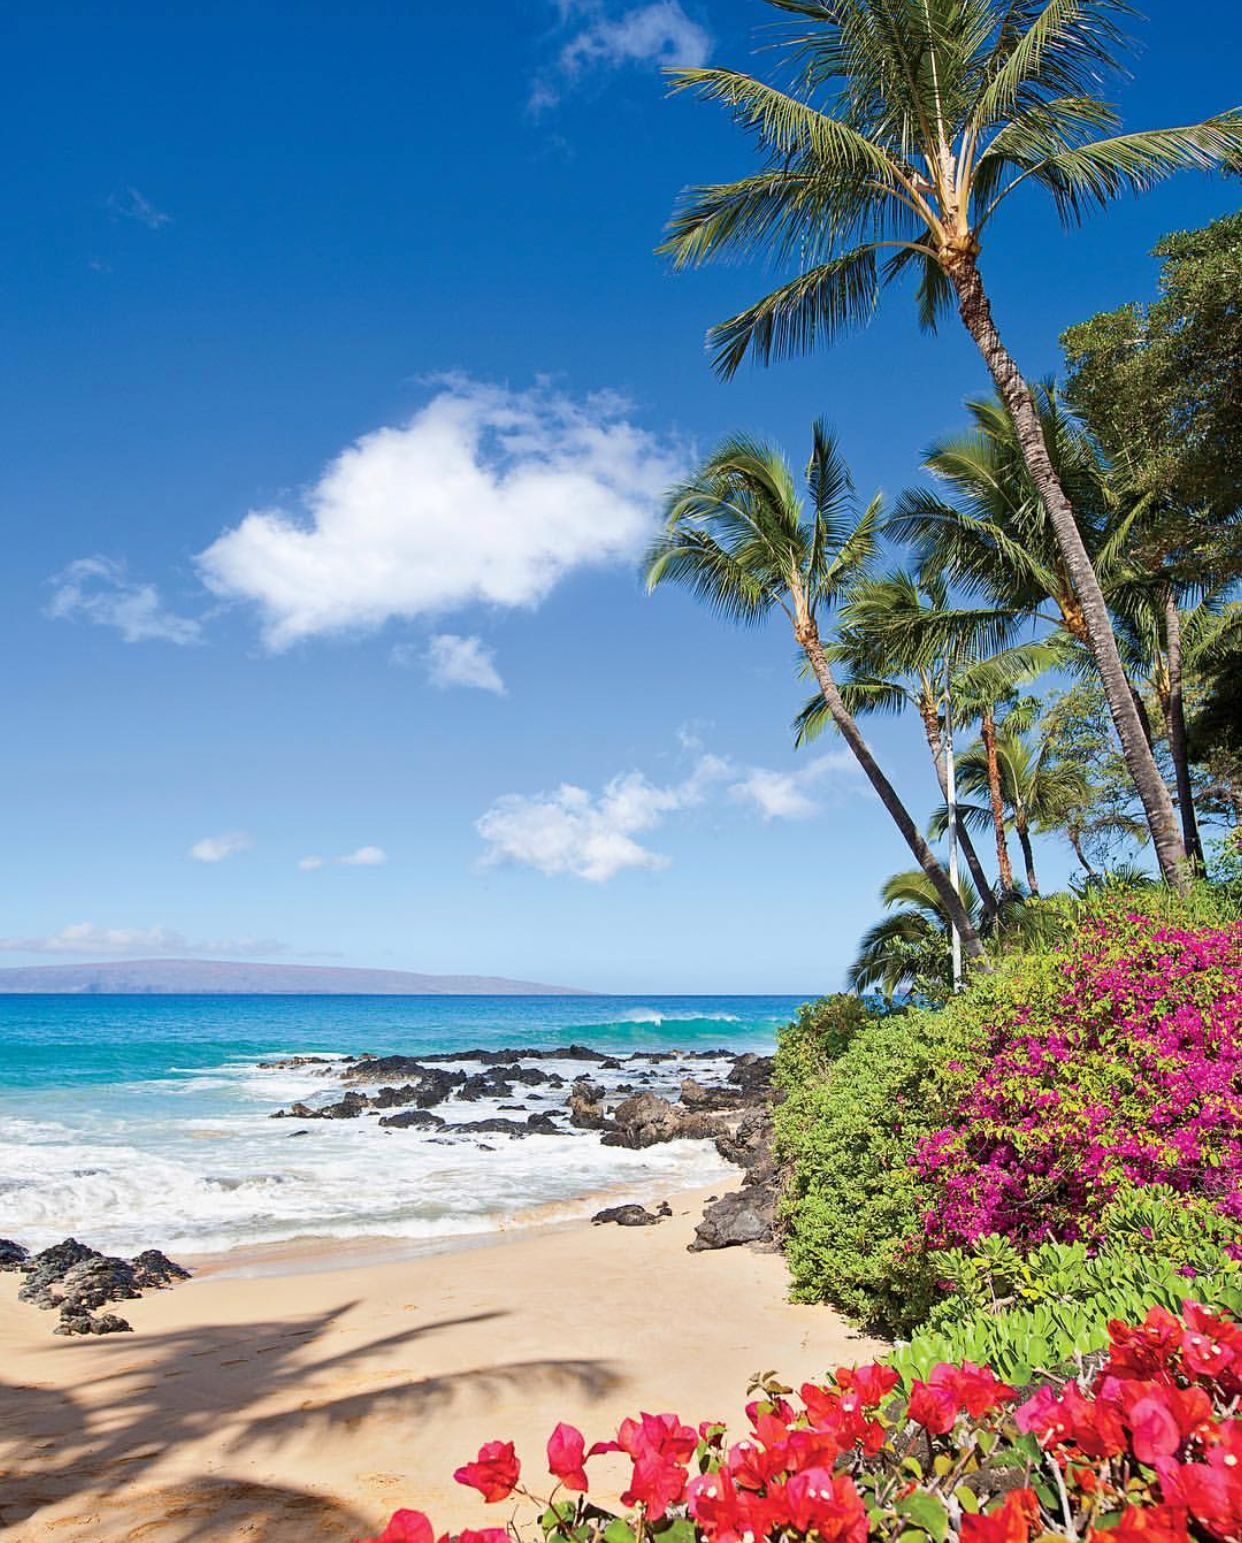 Maui Hawaii Beaches: Best Beaches To Visit, Hawaii Pictures, Beach